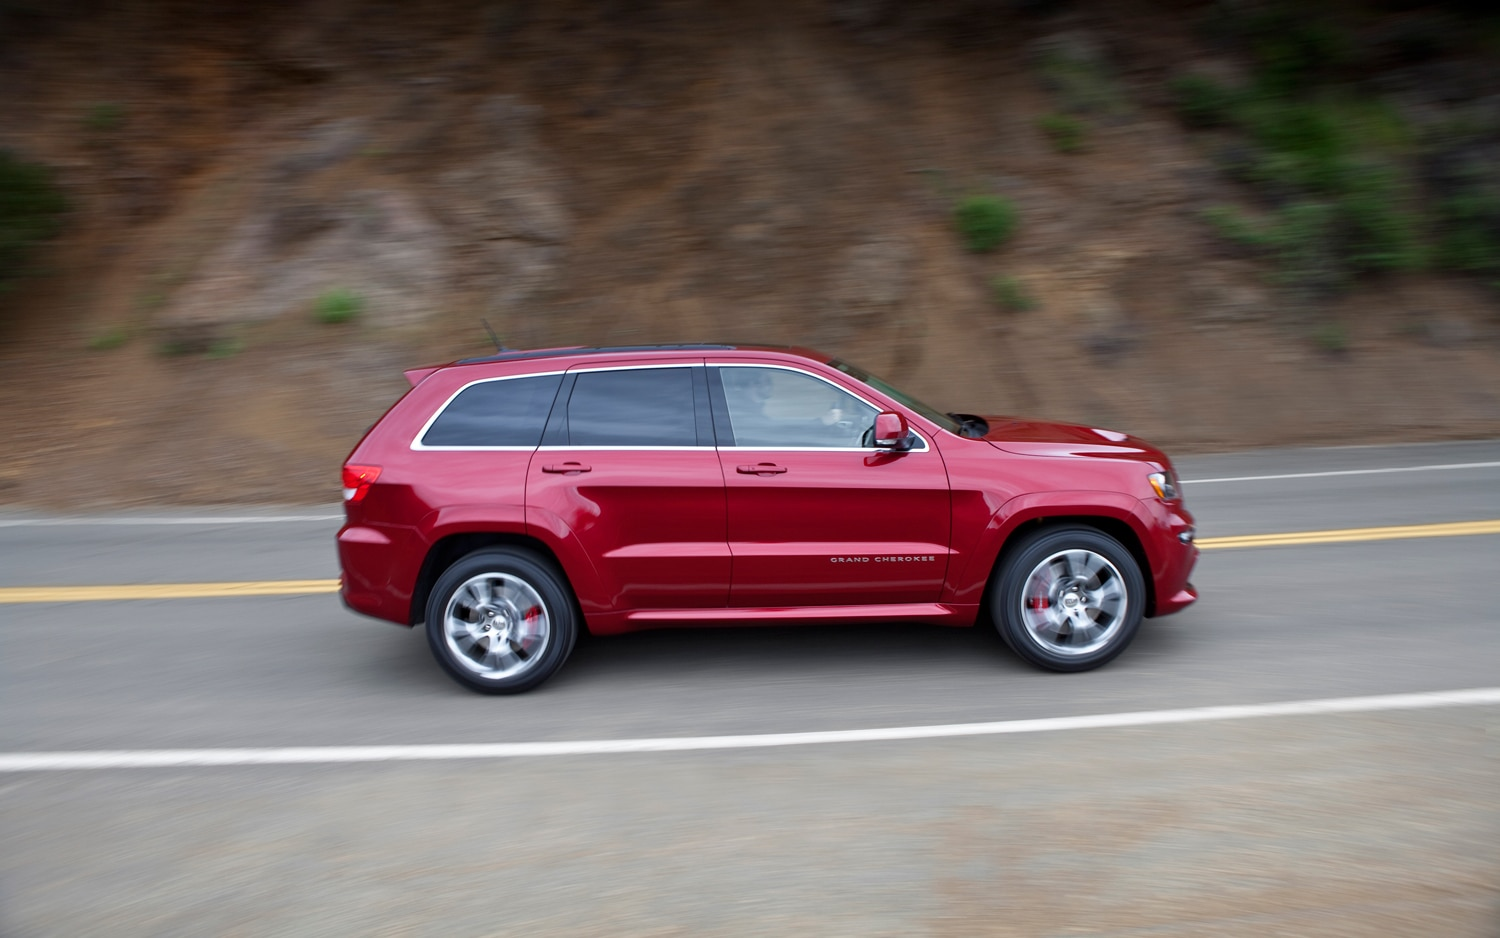 2012 Jeep Grand Cherokee SRT8 Side In Motion